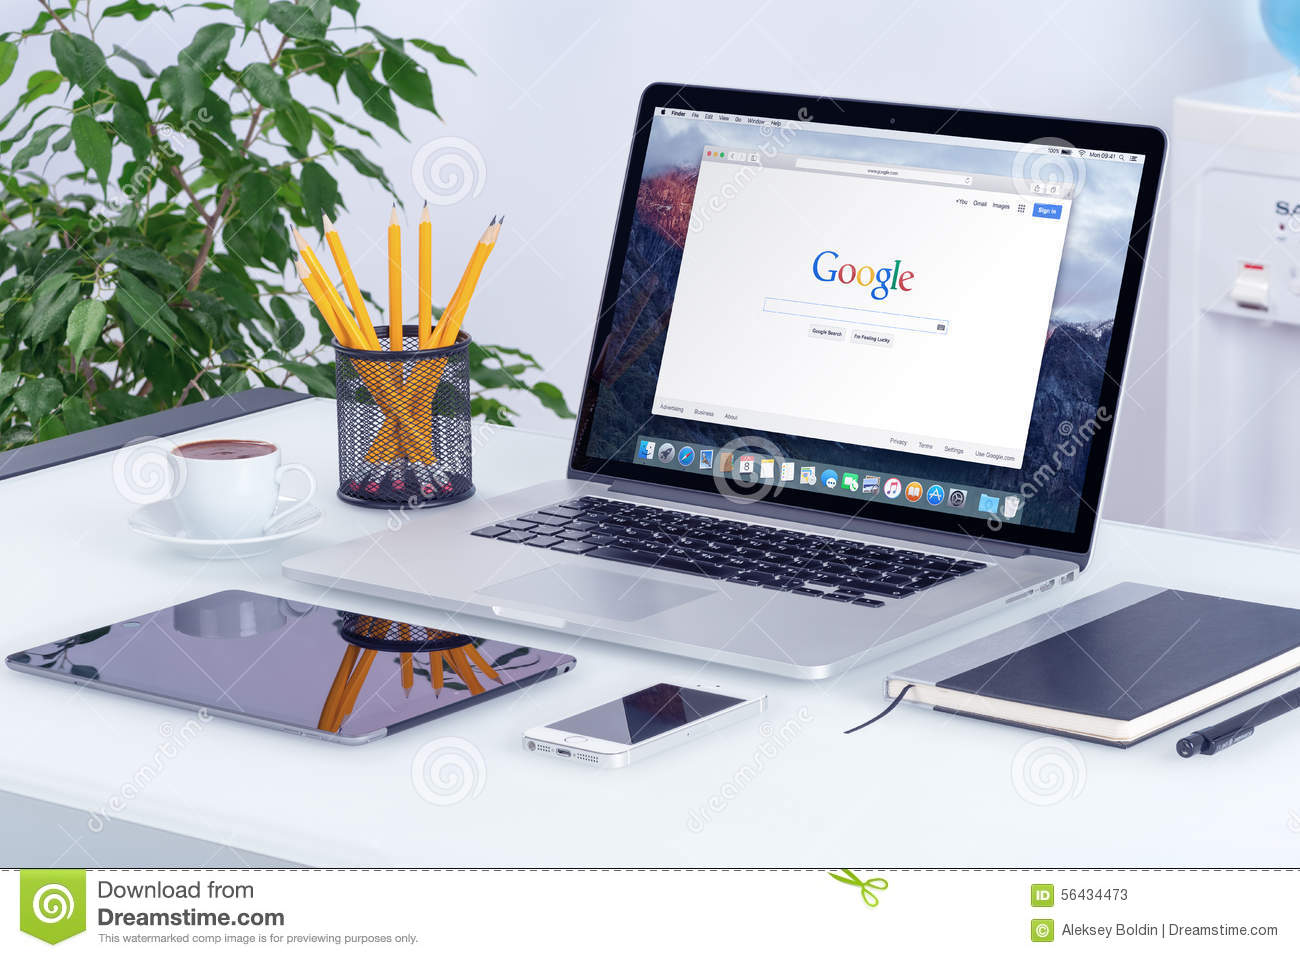 apple macbook pro on desk with google search web page editorial stock photo image of google. Black Bedroom Furniture Sets. Home Design Ideas